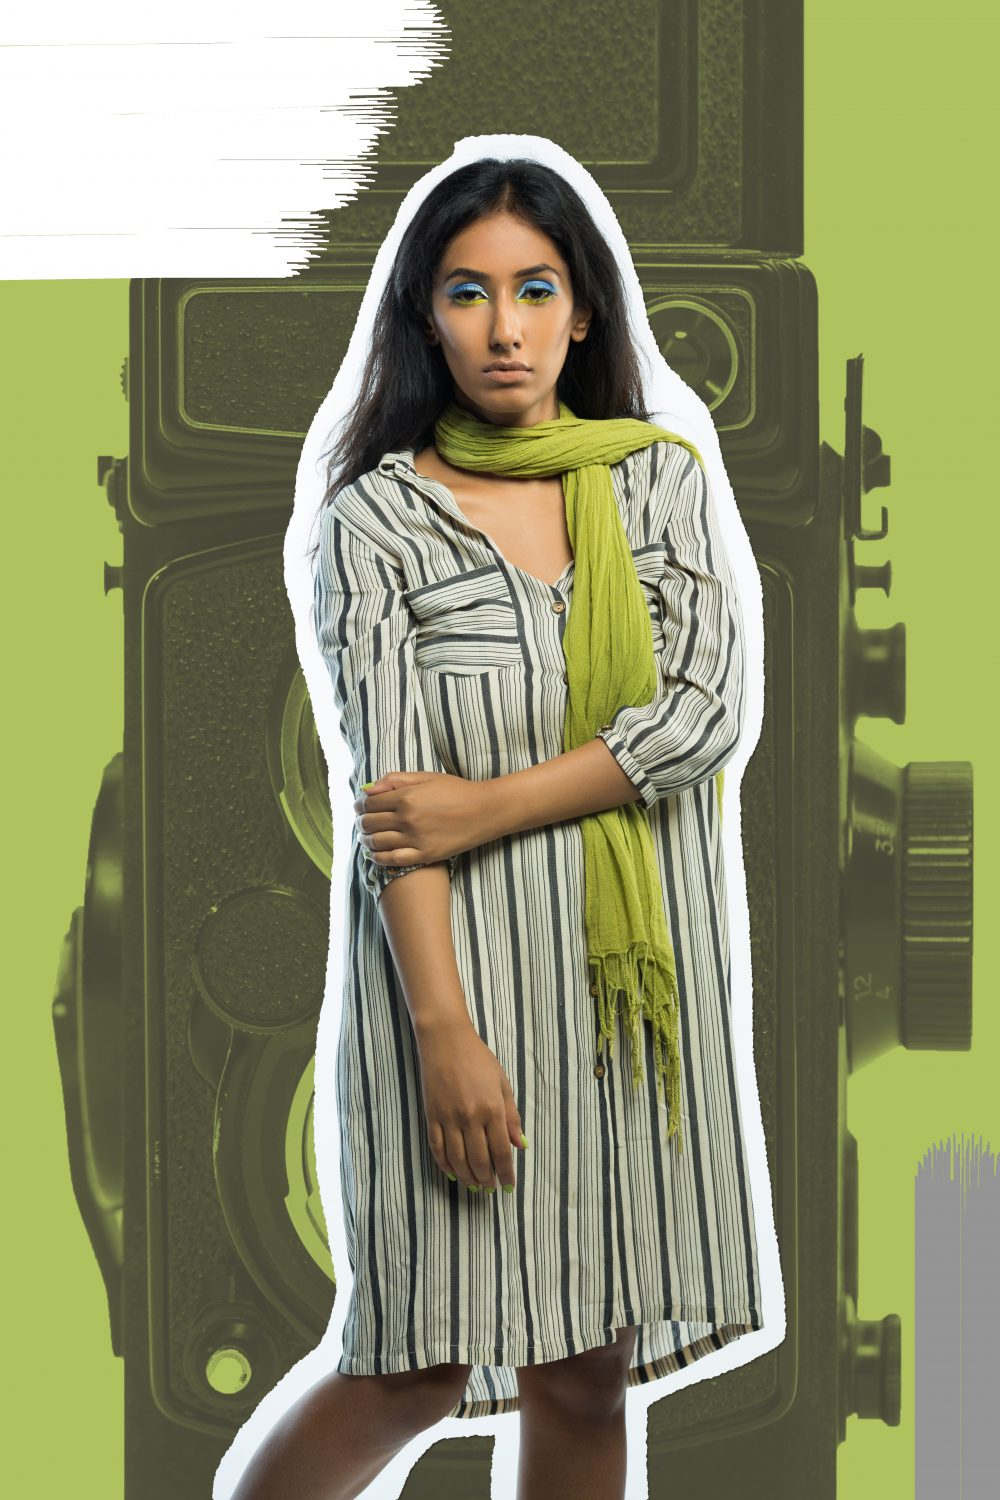 hyderabad fashion bloggers ; Quirk box Quirky colors Editorial colorful fashion photography artwork candies candy style beauty blogger hyderabad indian Naznin Suhaer I Dress for the Applause model conceptual concept vero moda koovs max fashions yellow green fun artist prints graphic artsy pop art shirt dress stripes